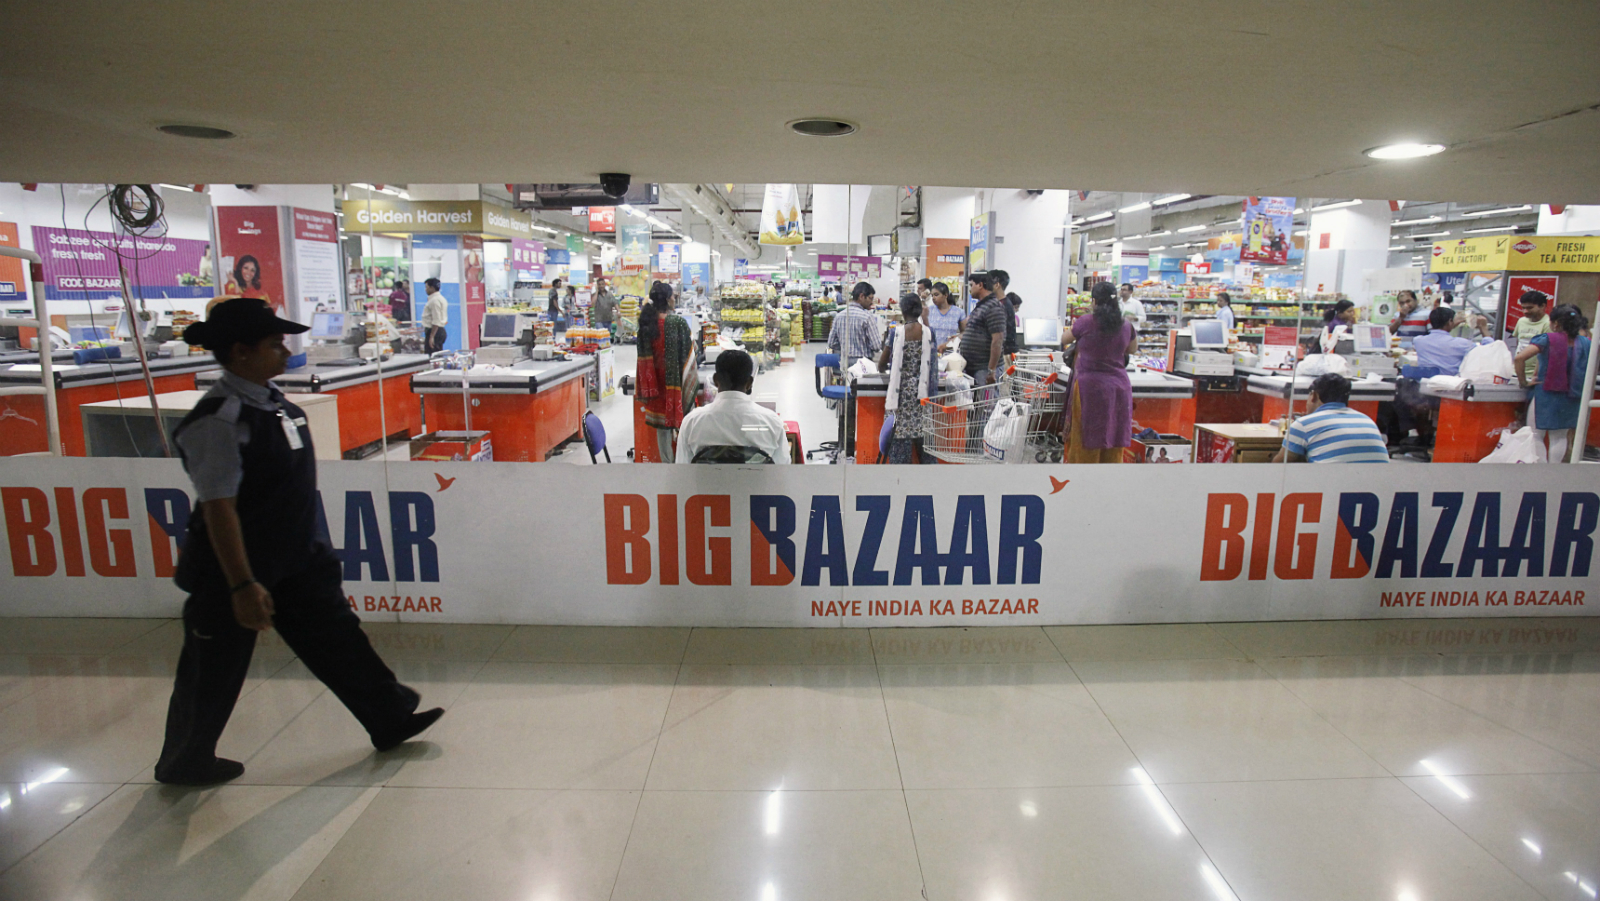 A security personnel walks past the Big Bazaar retail store in Mumbai June 9, 2012. Six months after the government backtracked on plans to allow foreign retail giants such as Wal-Mart Stores and Carrefour to form joint ventures, cash-starved domestic chains are selling assets, shutting stores, and scaling back expansion plans.